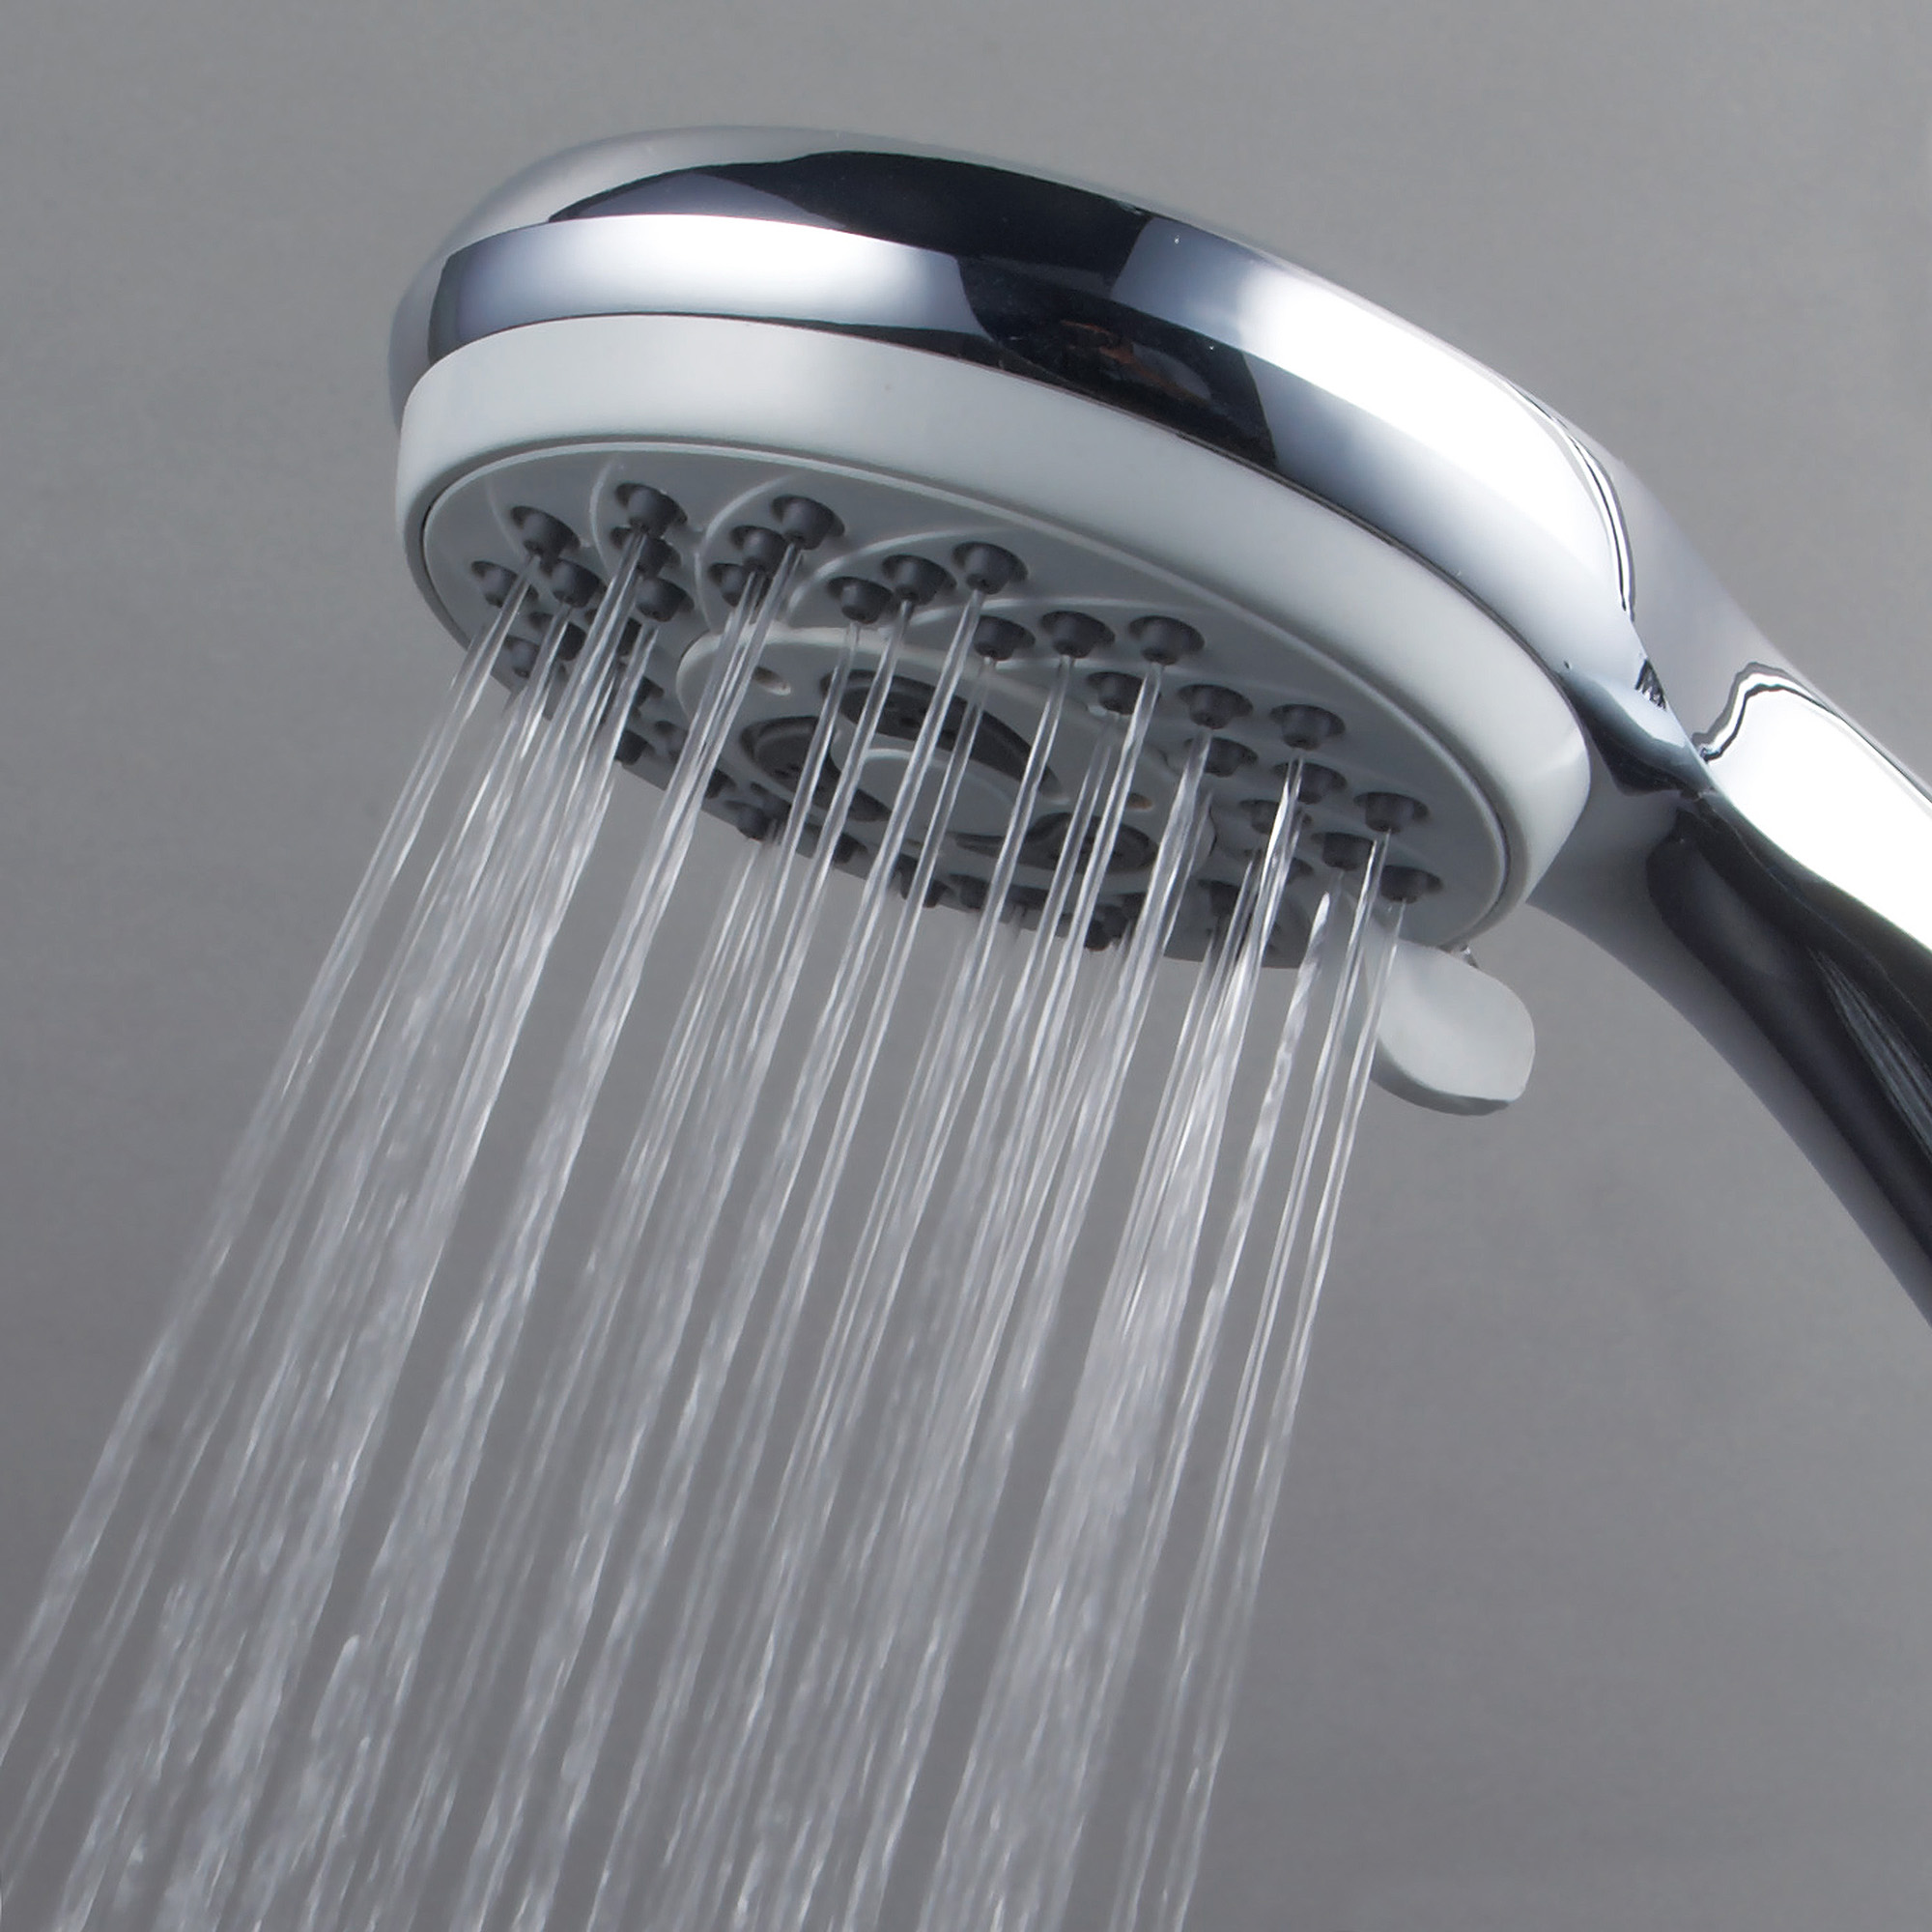 PowerSpa 4-Setting Deluxe Hand Shower, Chrome